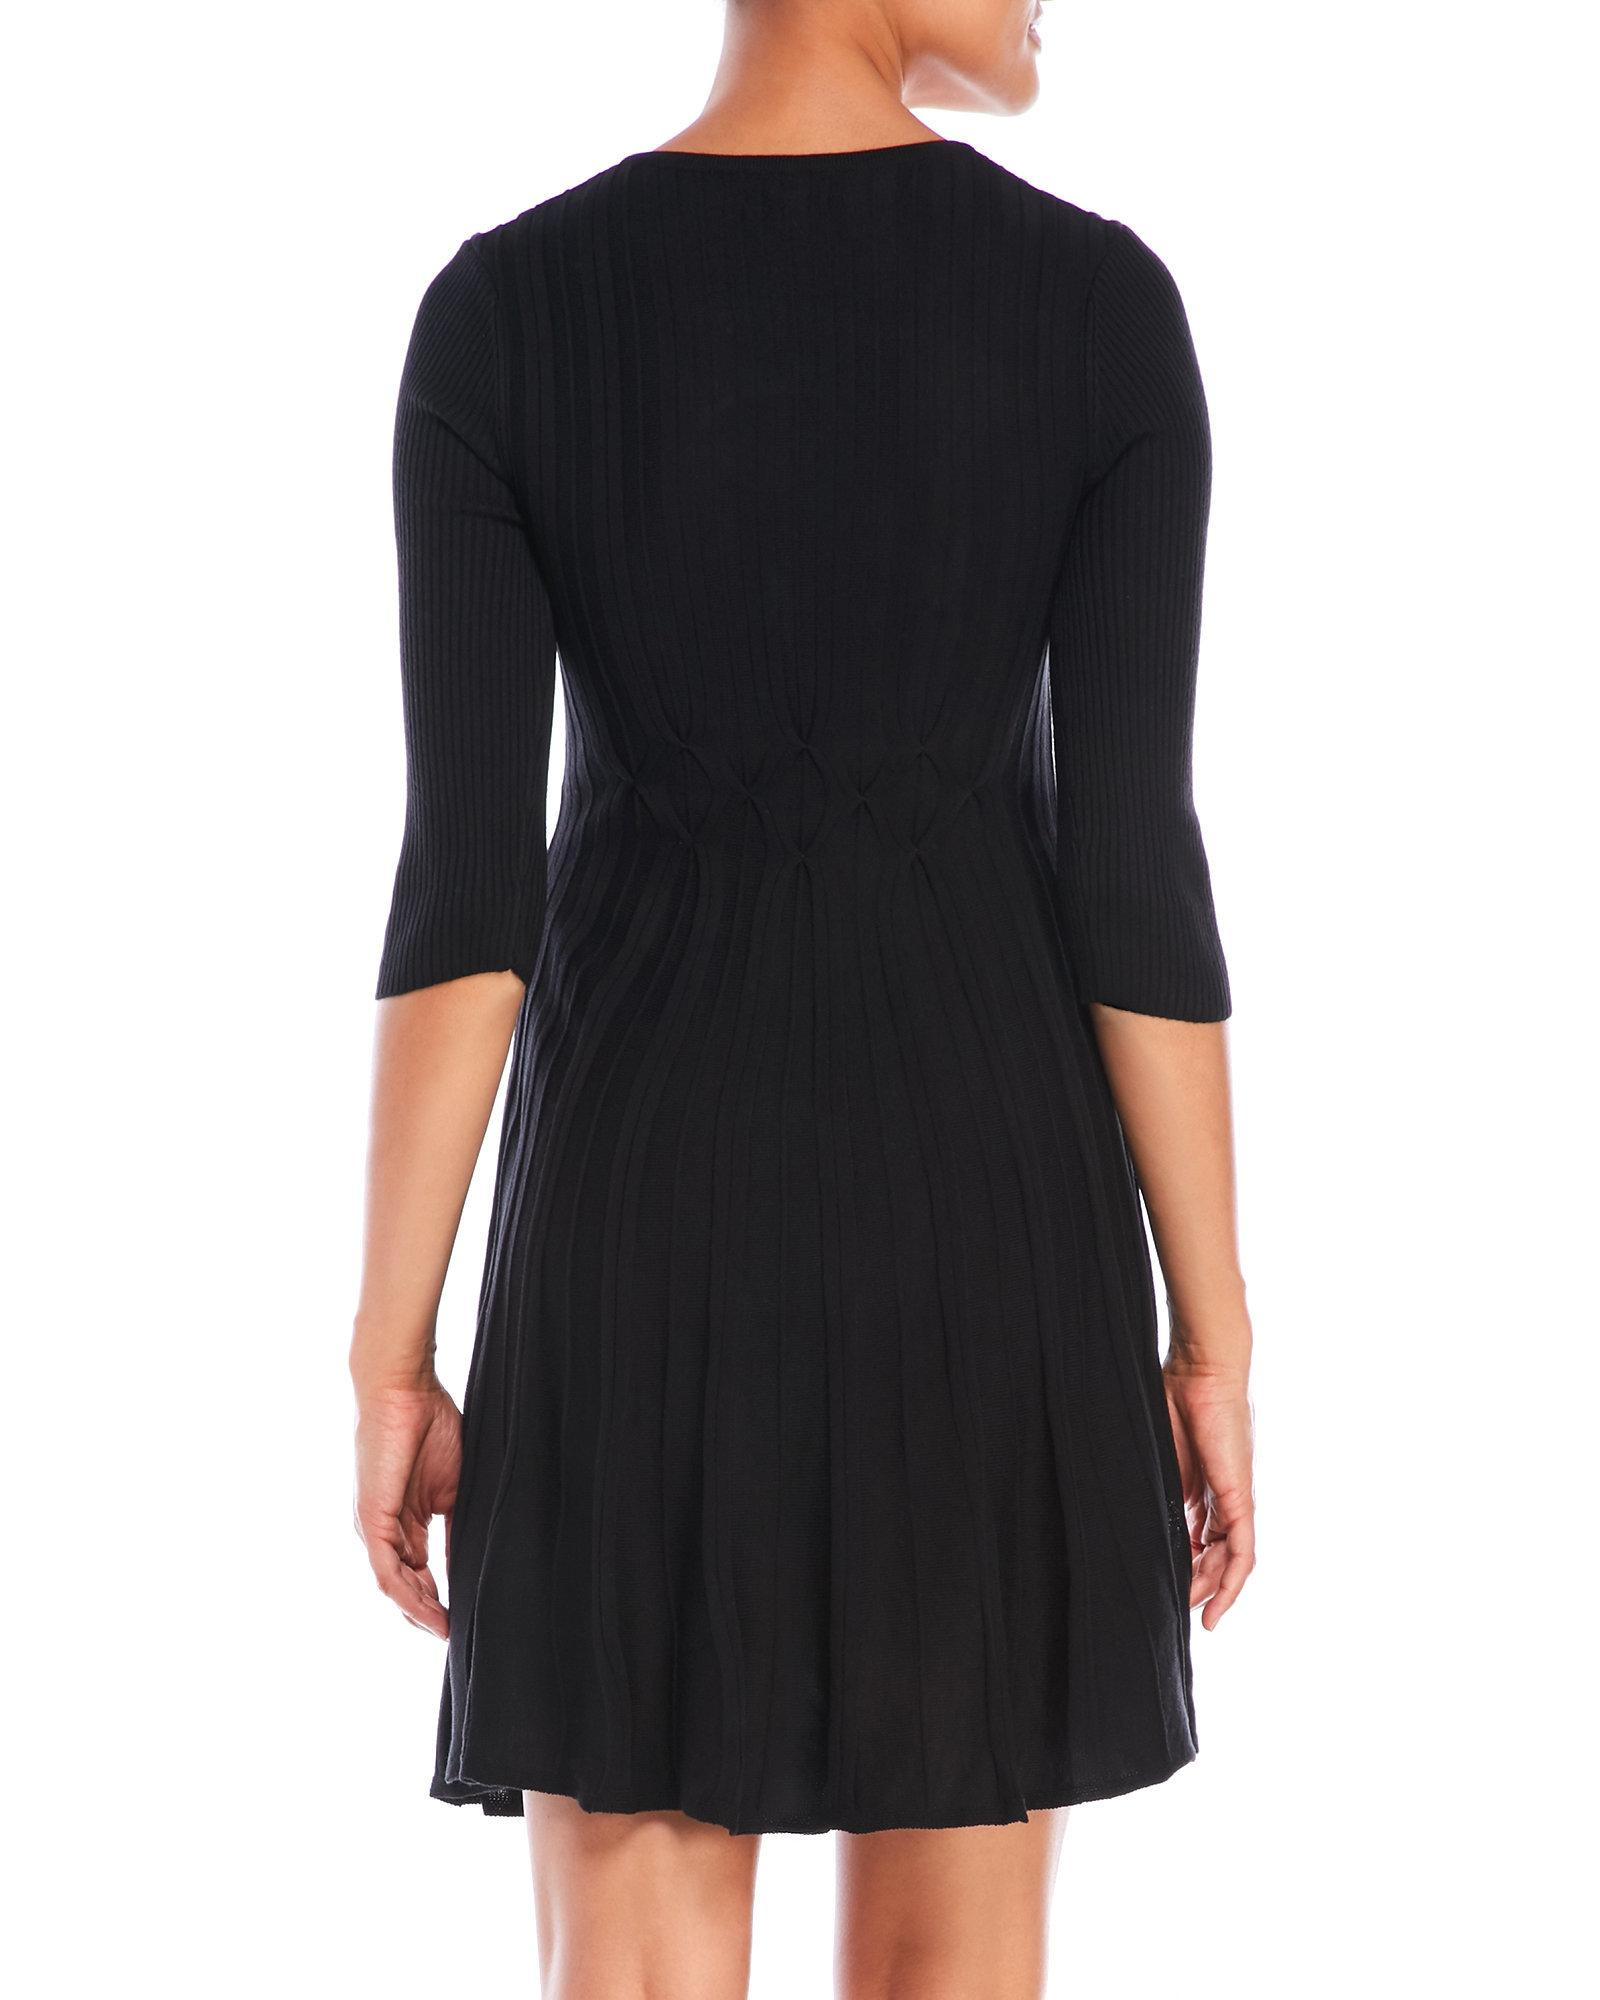 Connected Apparel Textured Sweater Dress With V Neck In